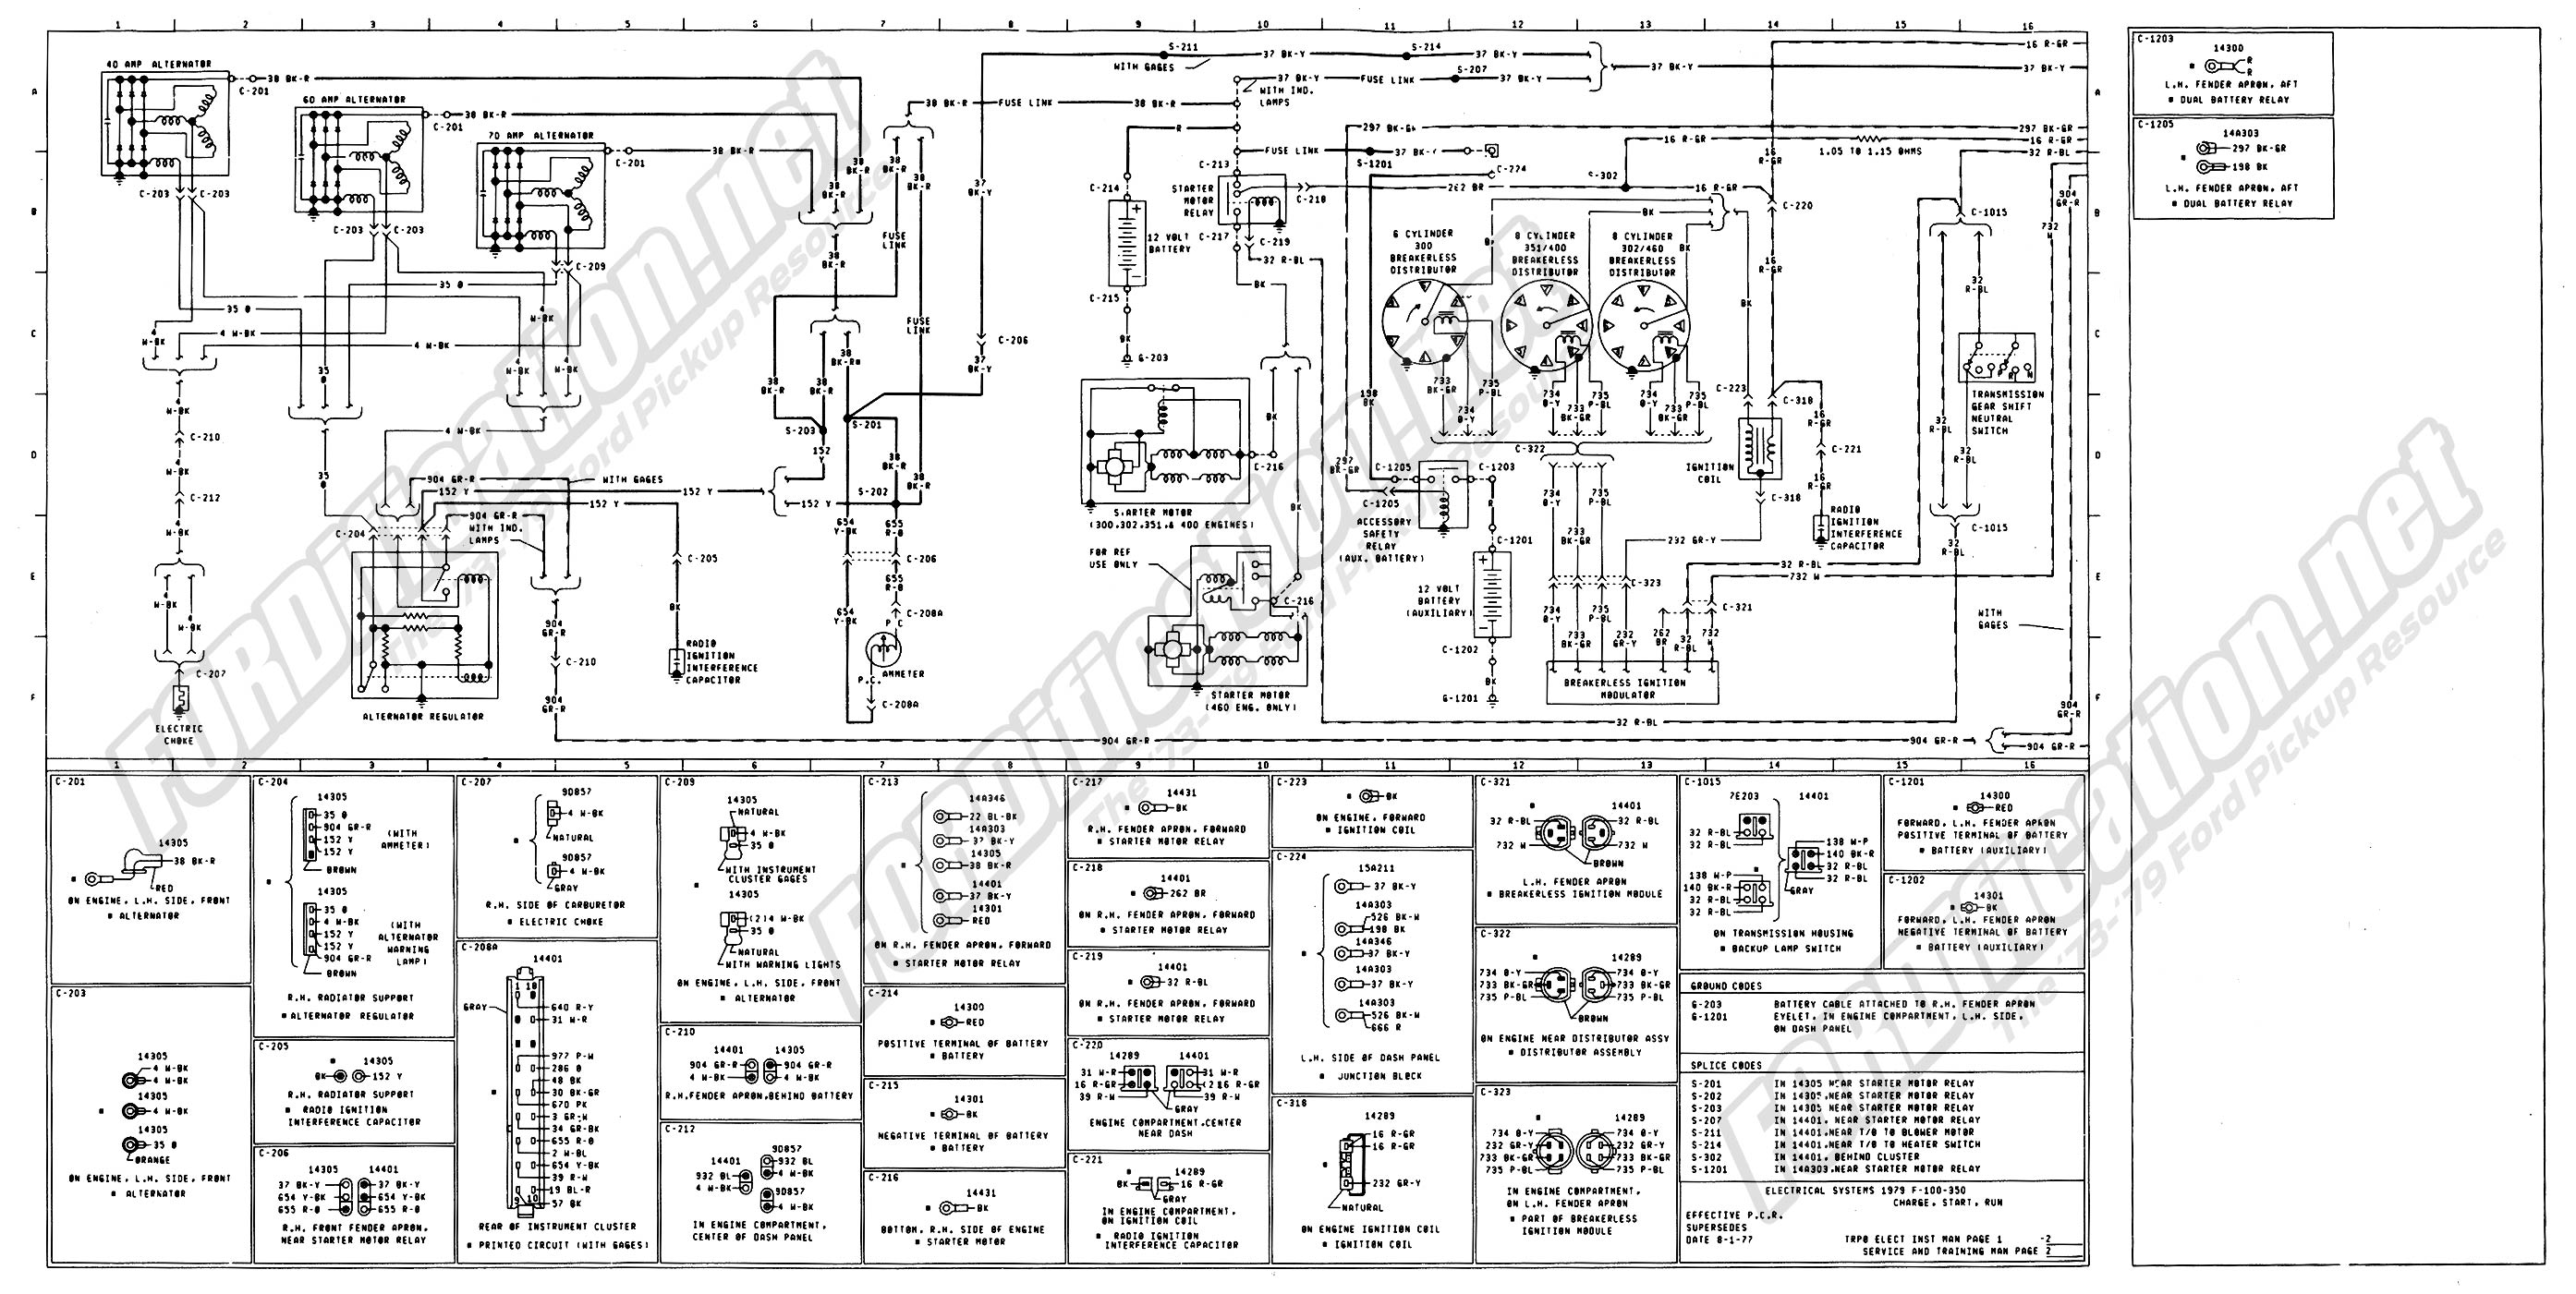 wiring_79master_2of9 1973 1979 ford truck wiring diagrams & schematics fordification net  at crackthecode.co